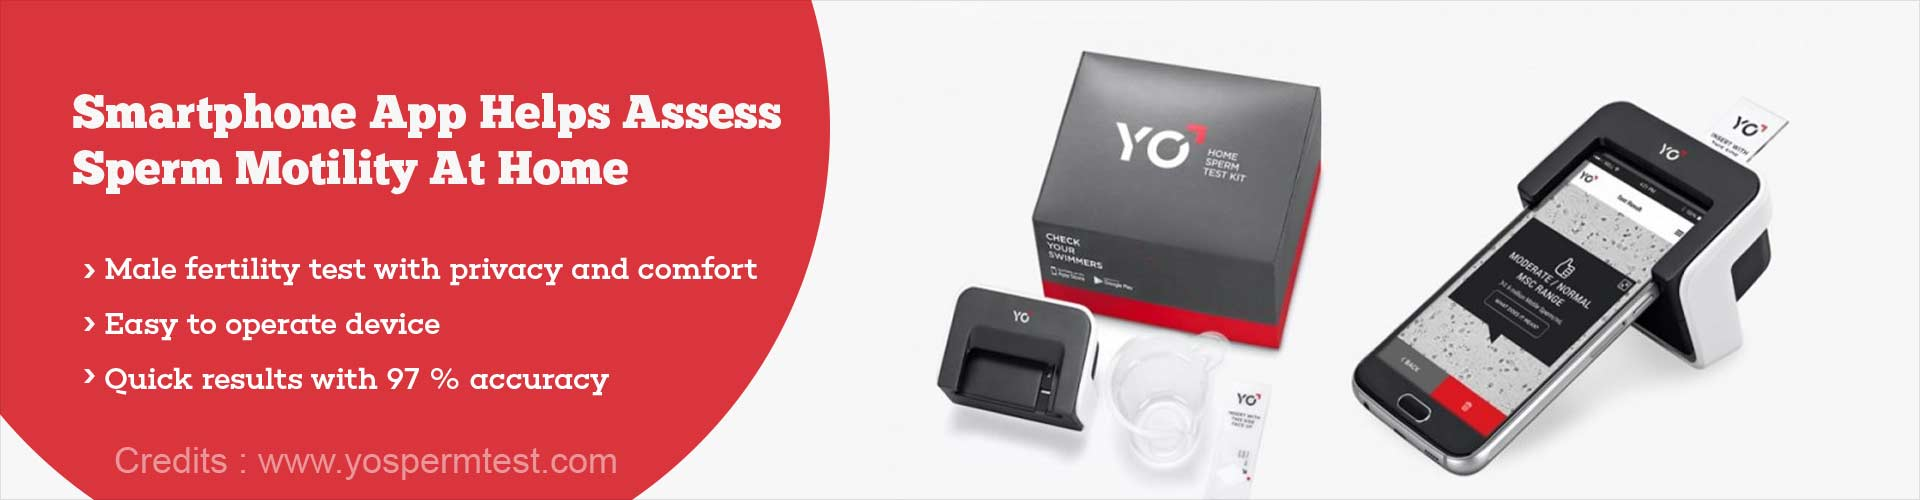 FDA Approved YO Home Sperm Test To Find Male Fertility Status